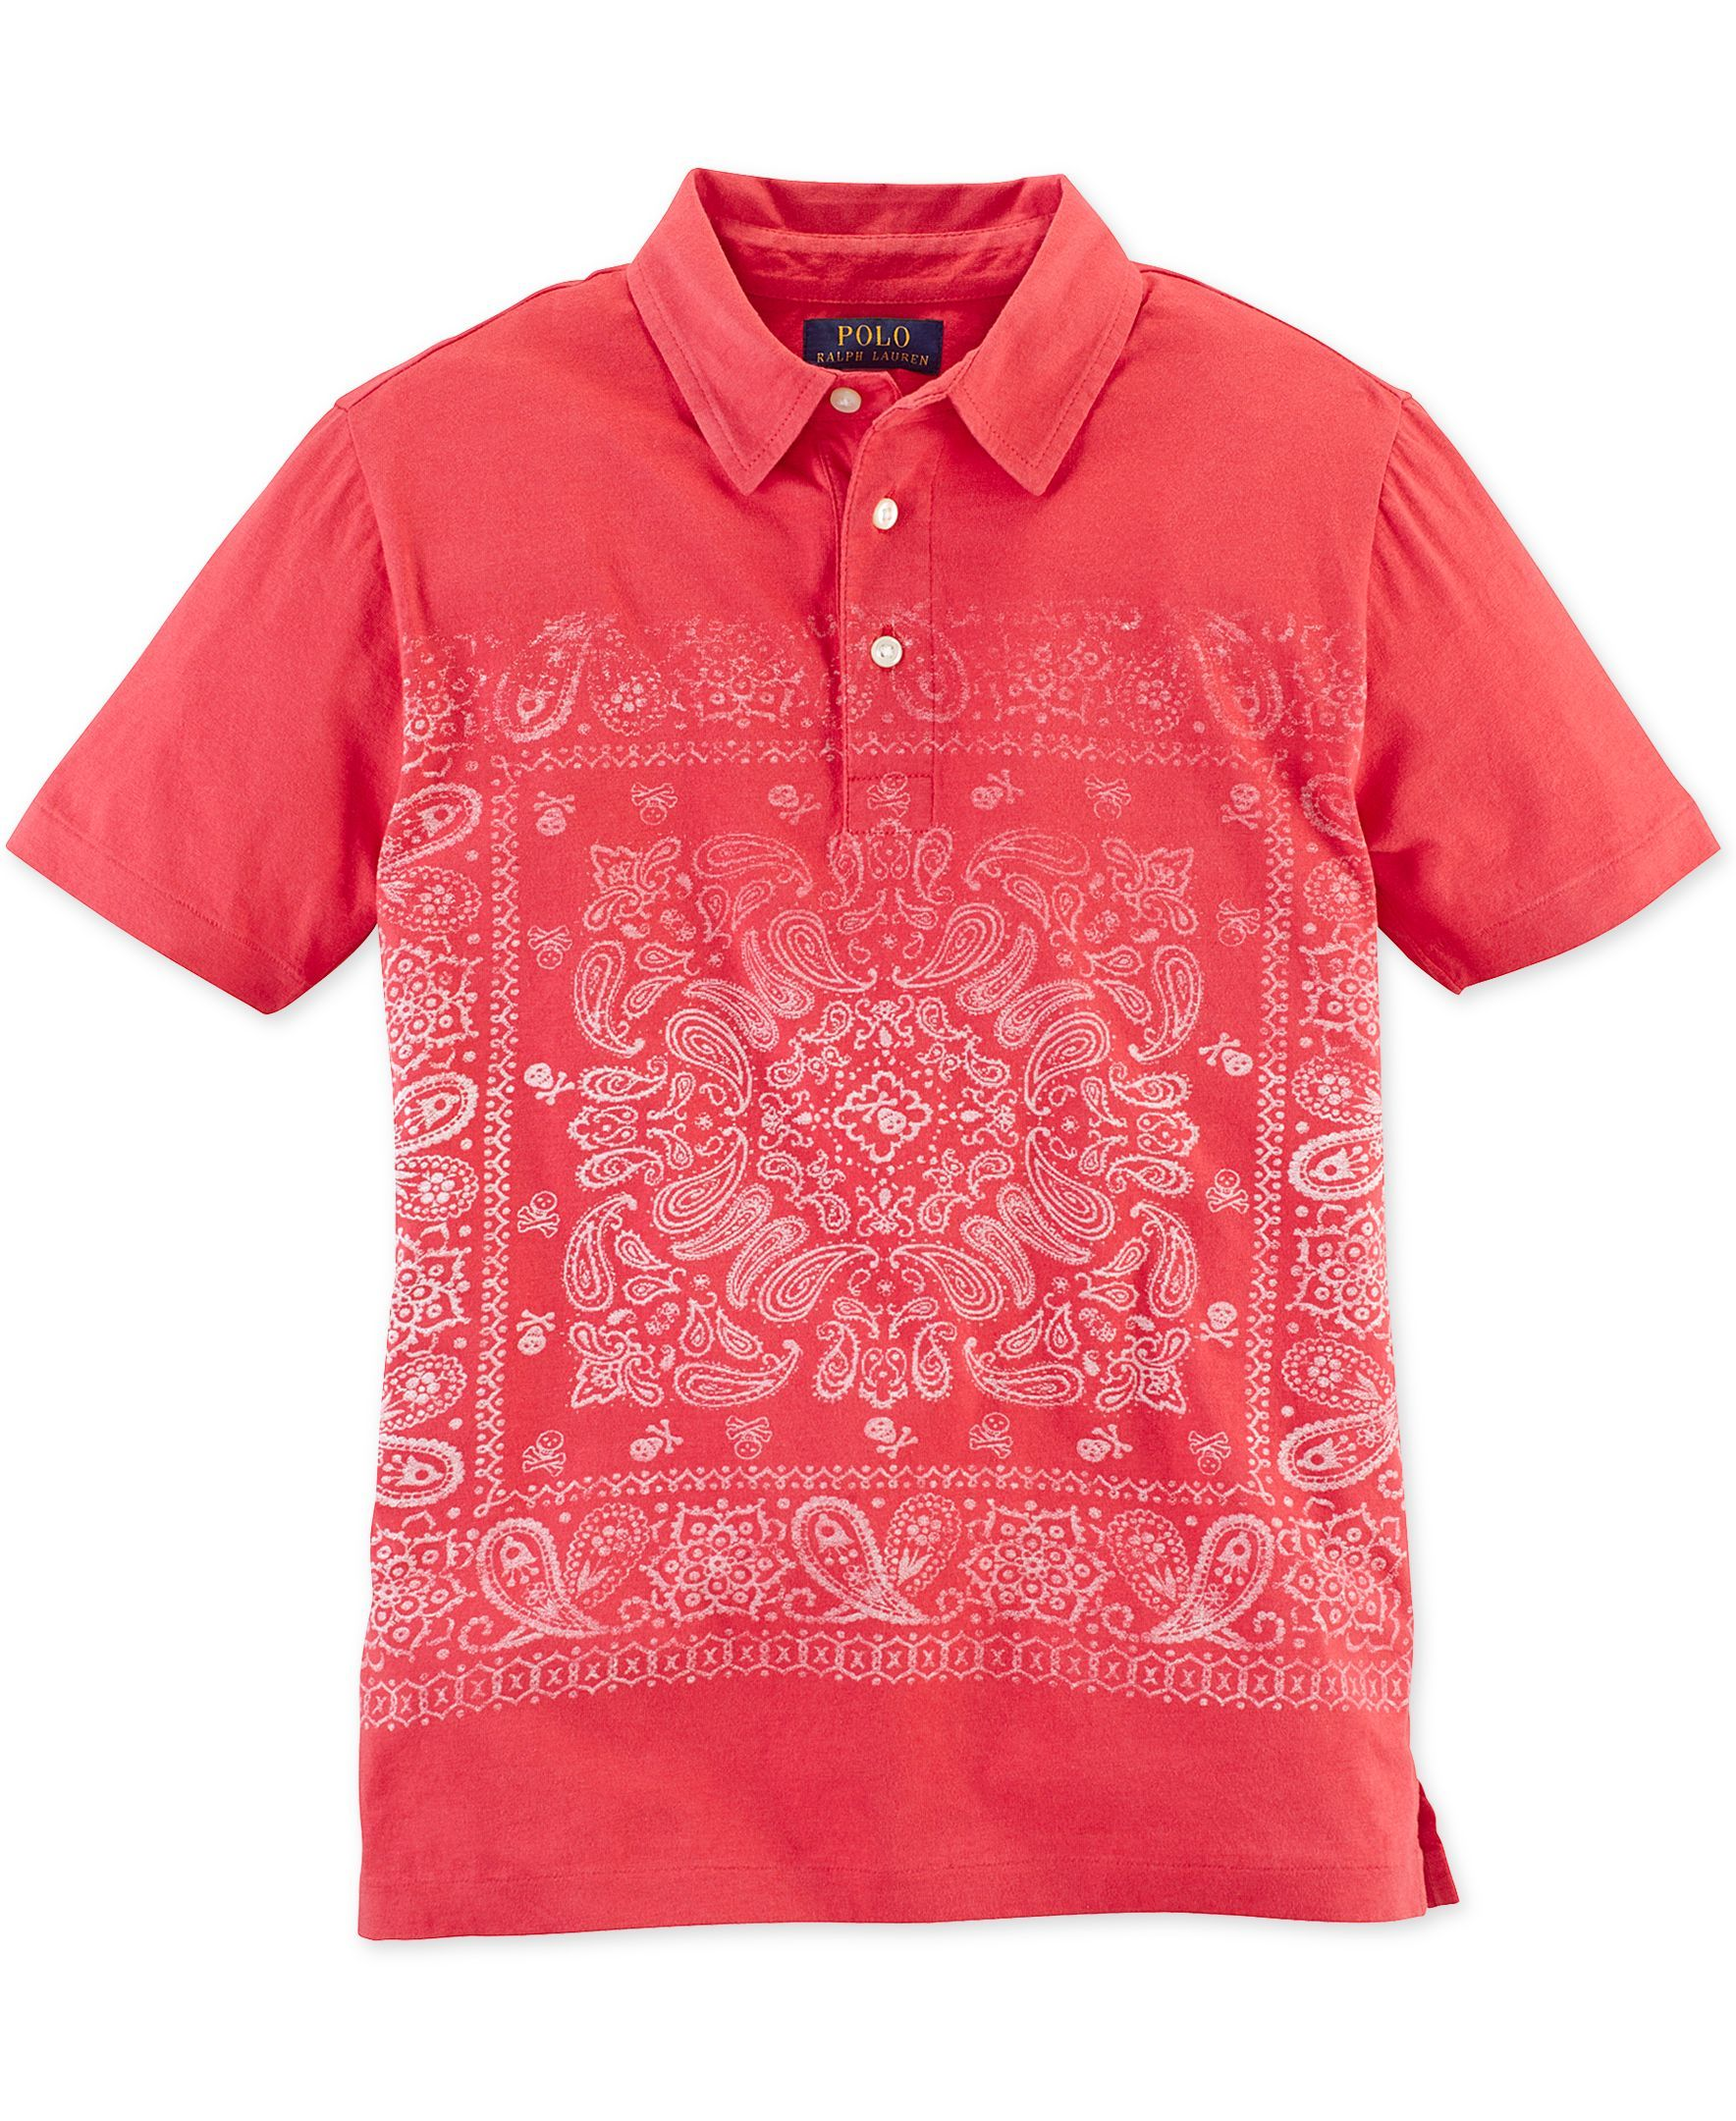 9d55d1b4 Ralph Lauren Boys' Printed Jersey-Knit Polo | Products